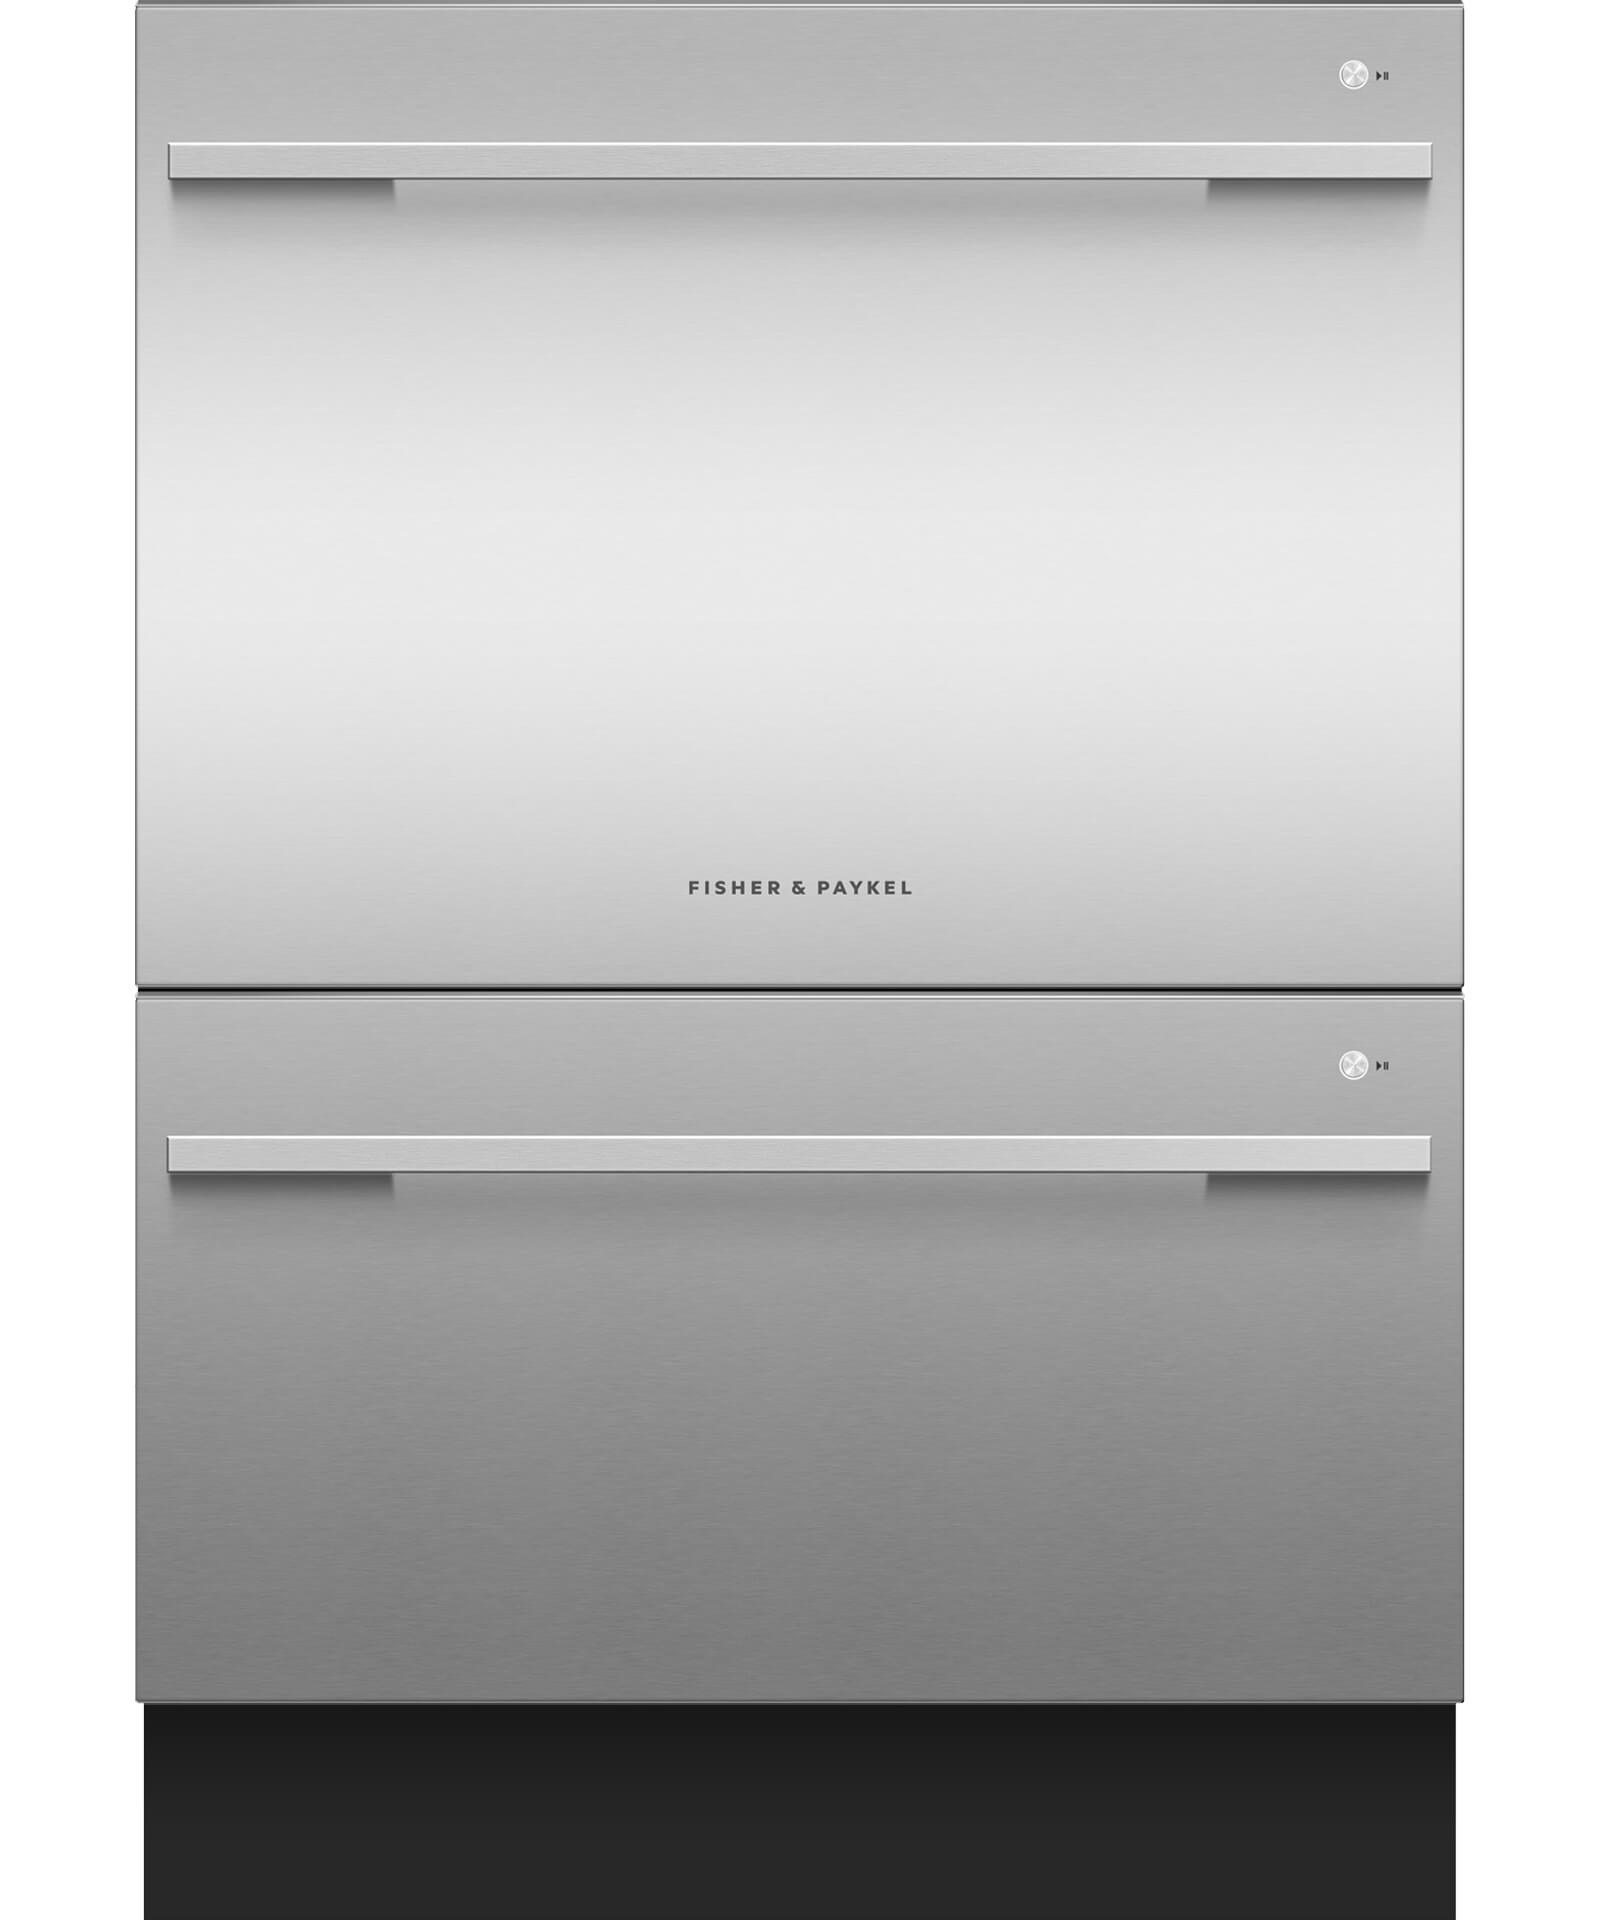 fisher and paykel dishwasher manual dd605